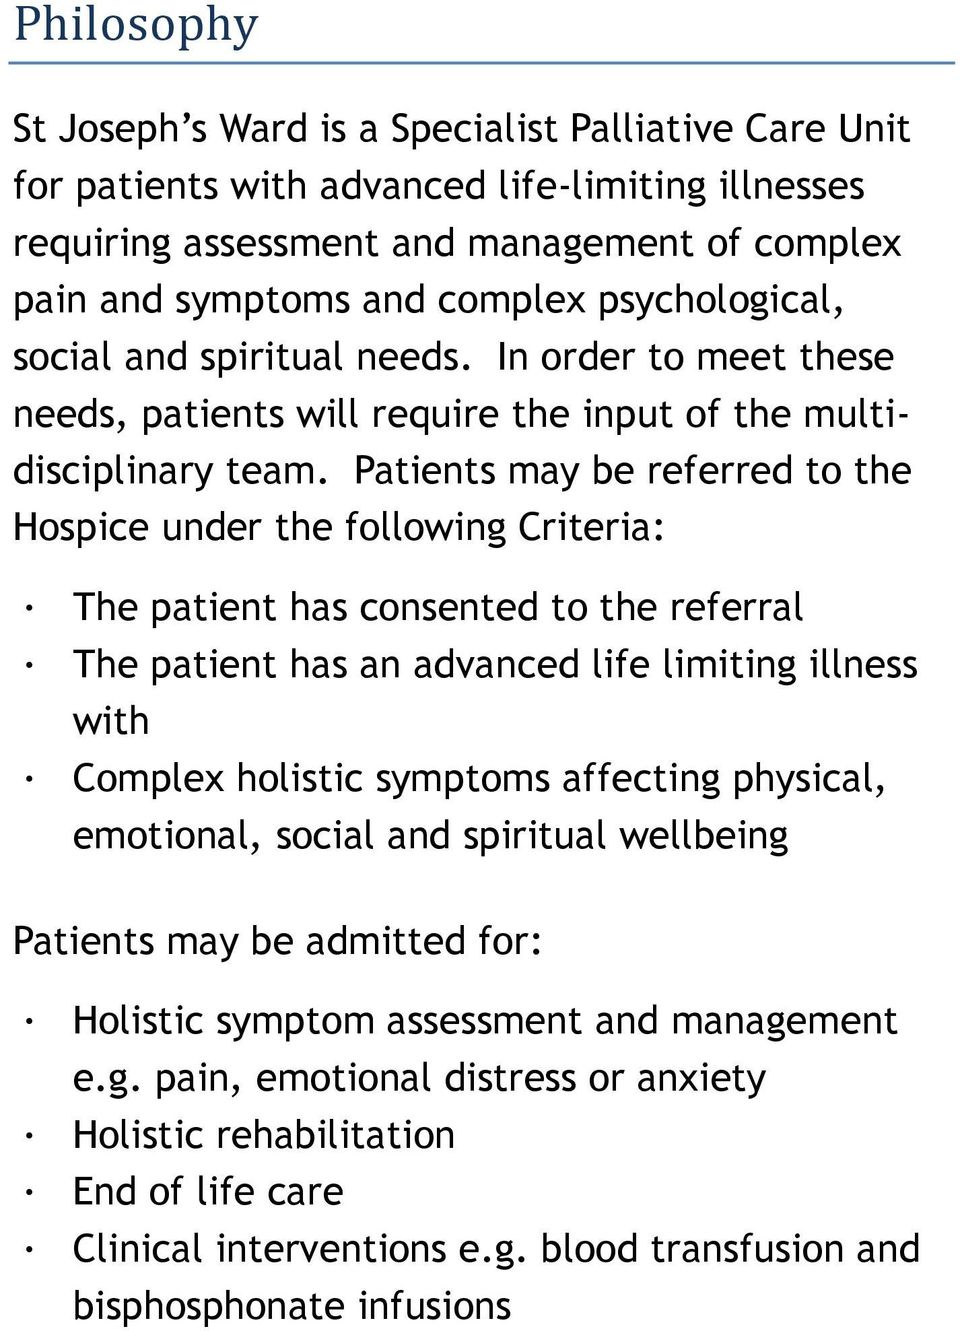 Patients may be referred to the Hospice under the following Criteria: The patient has consented to the referral The patient has an advanced life limiting illness with Complex holistic symptoms